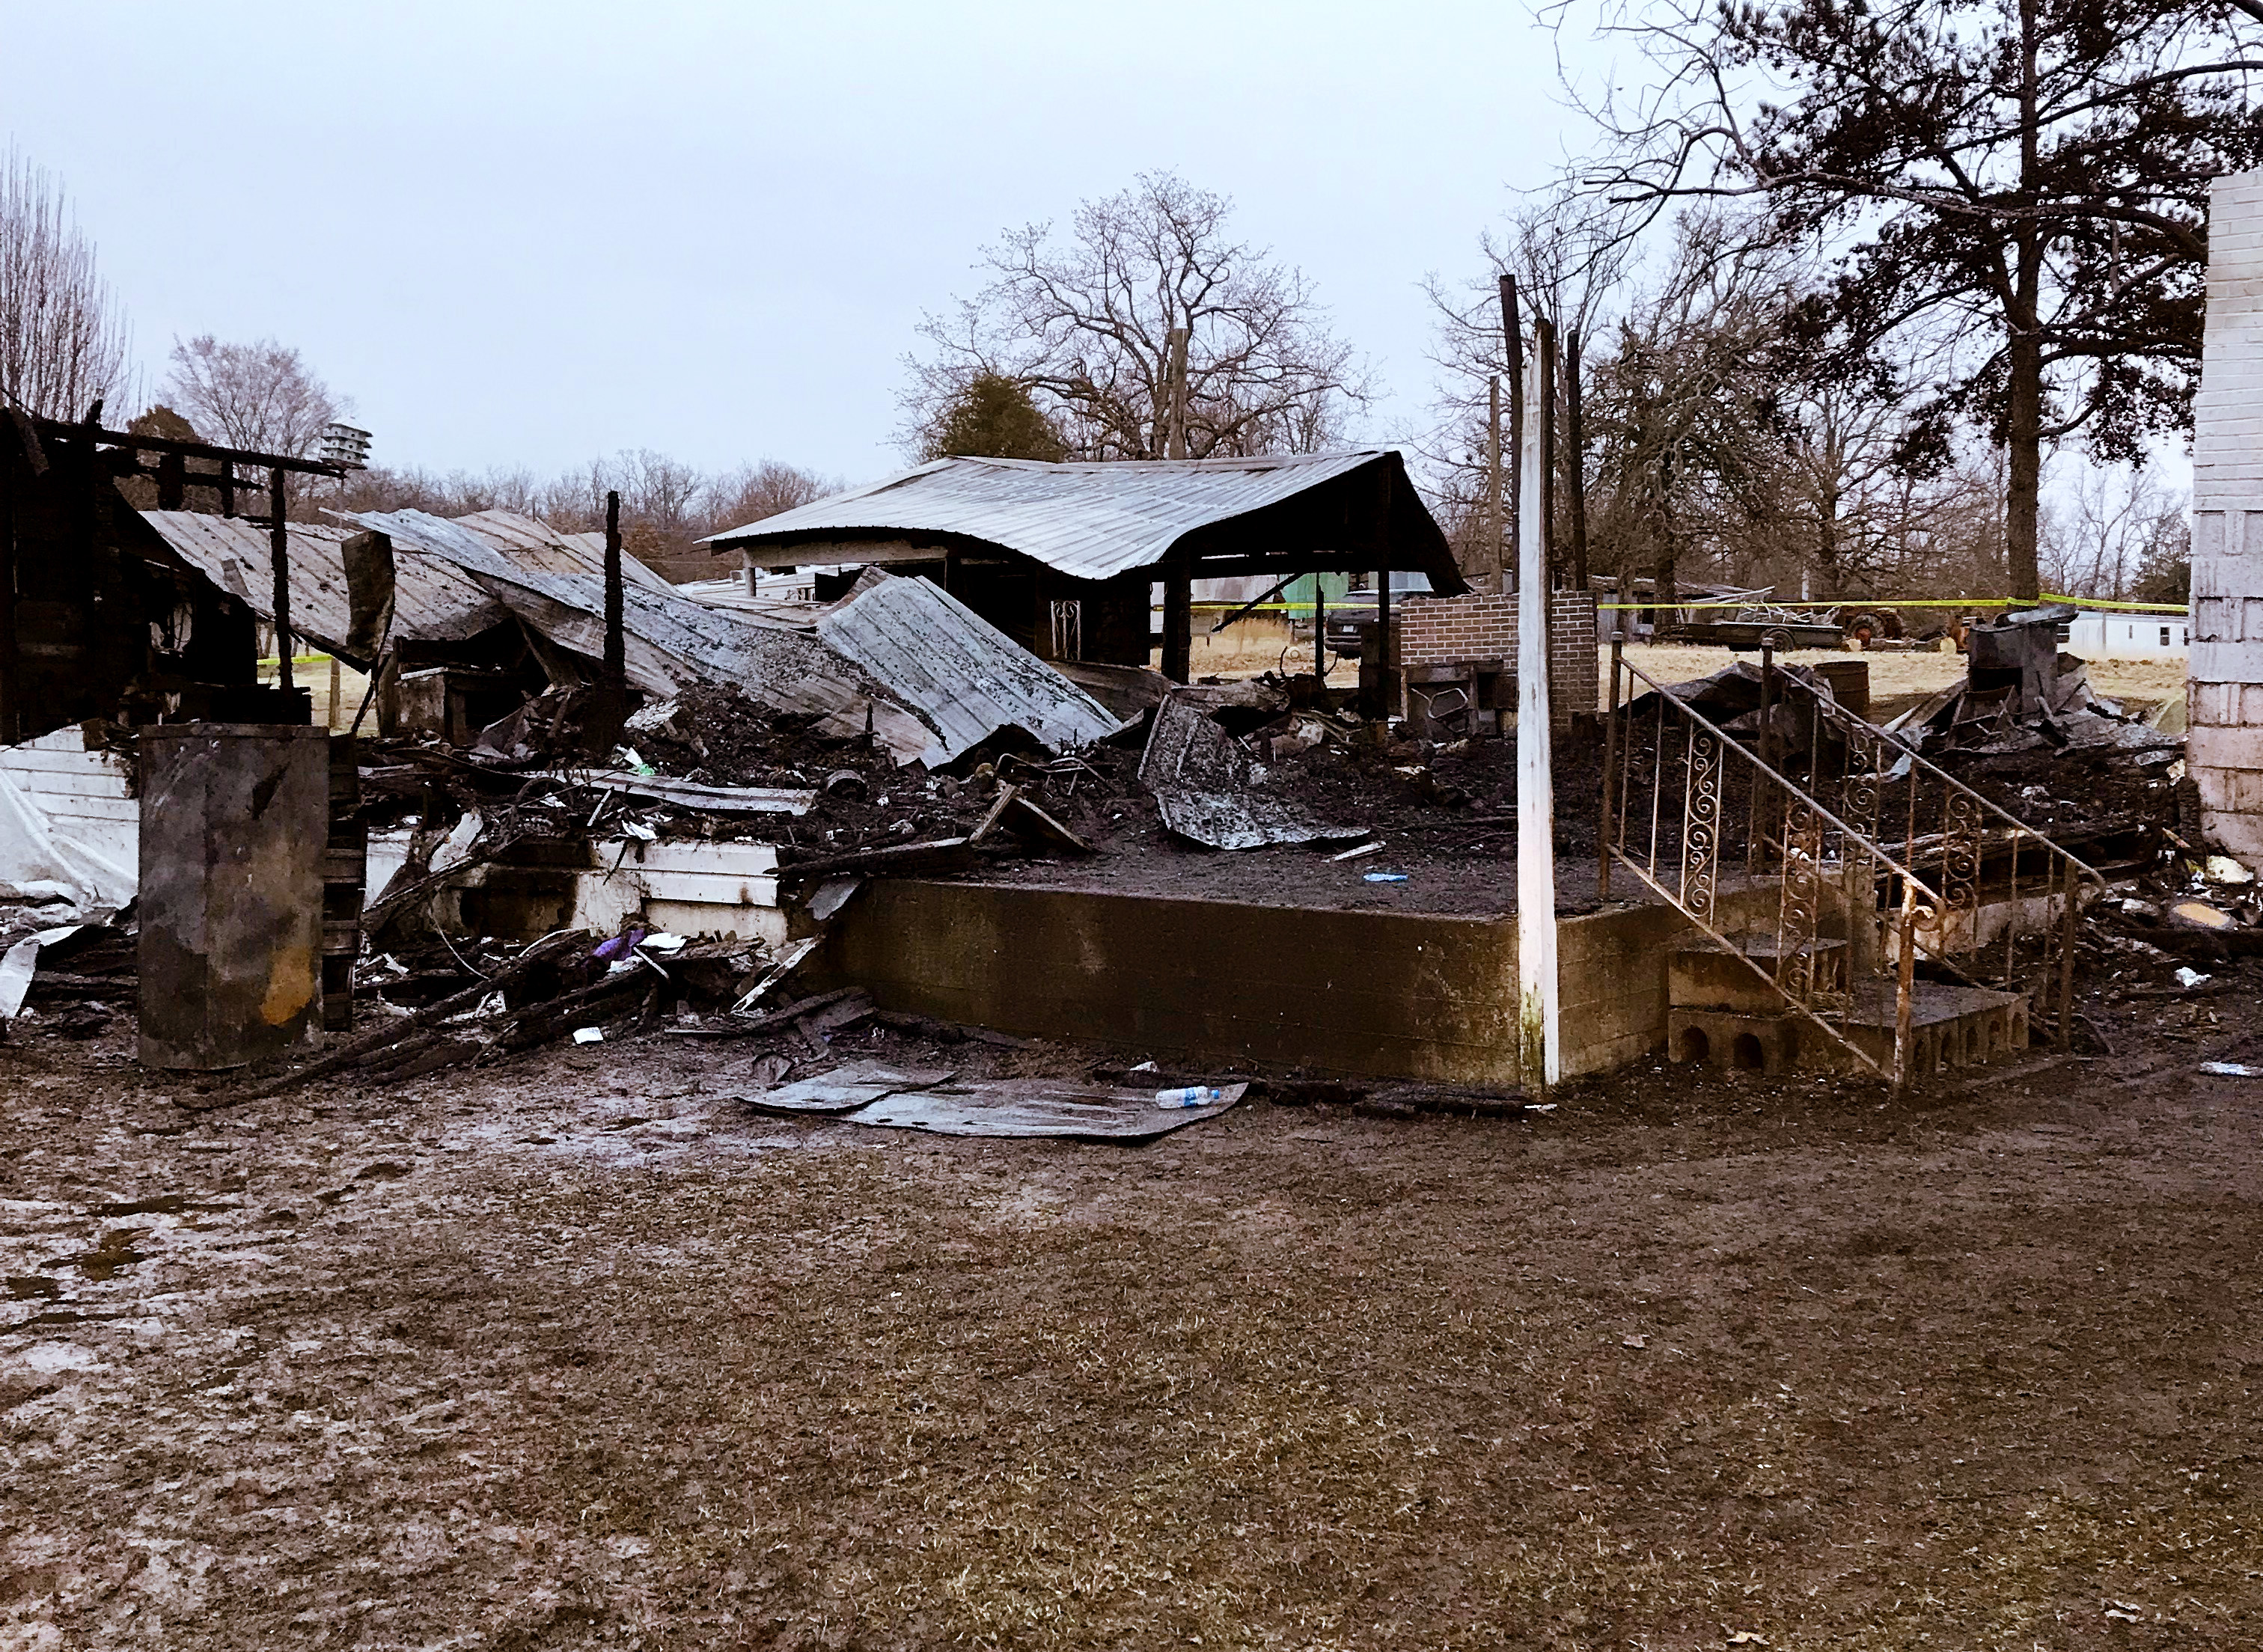 An elderly couple died in a house fire north of Muldrow on Friday, Feb. 1, 2019. (Courtesy of the Sequoyah County Sheriff's Office)